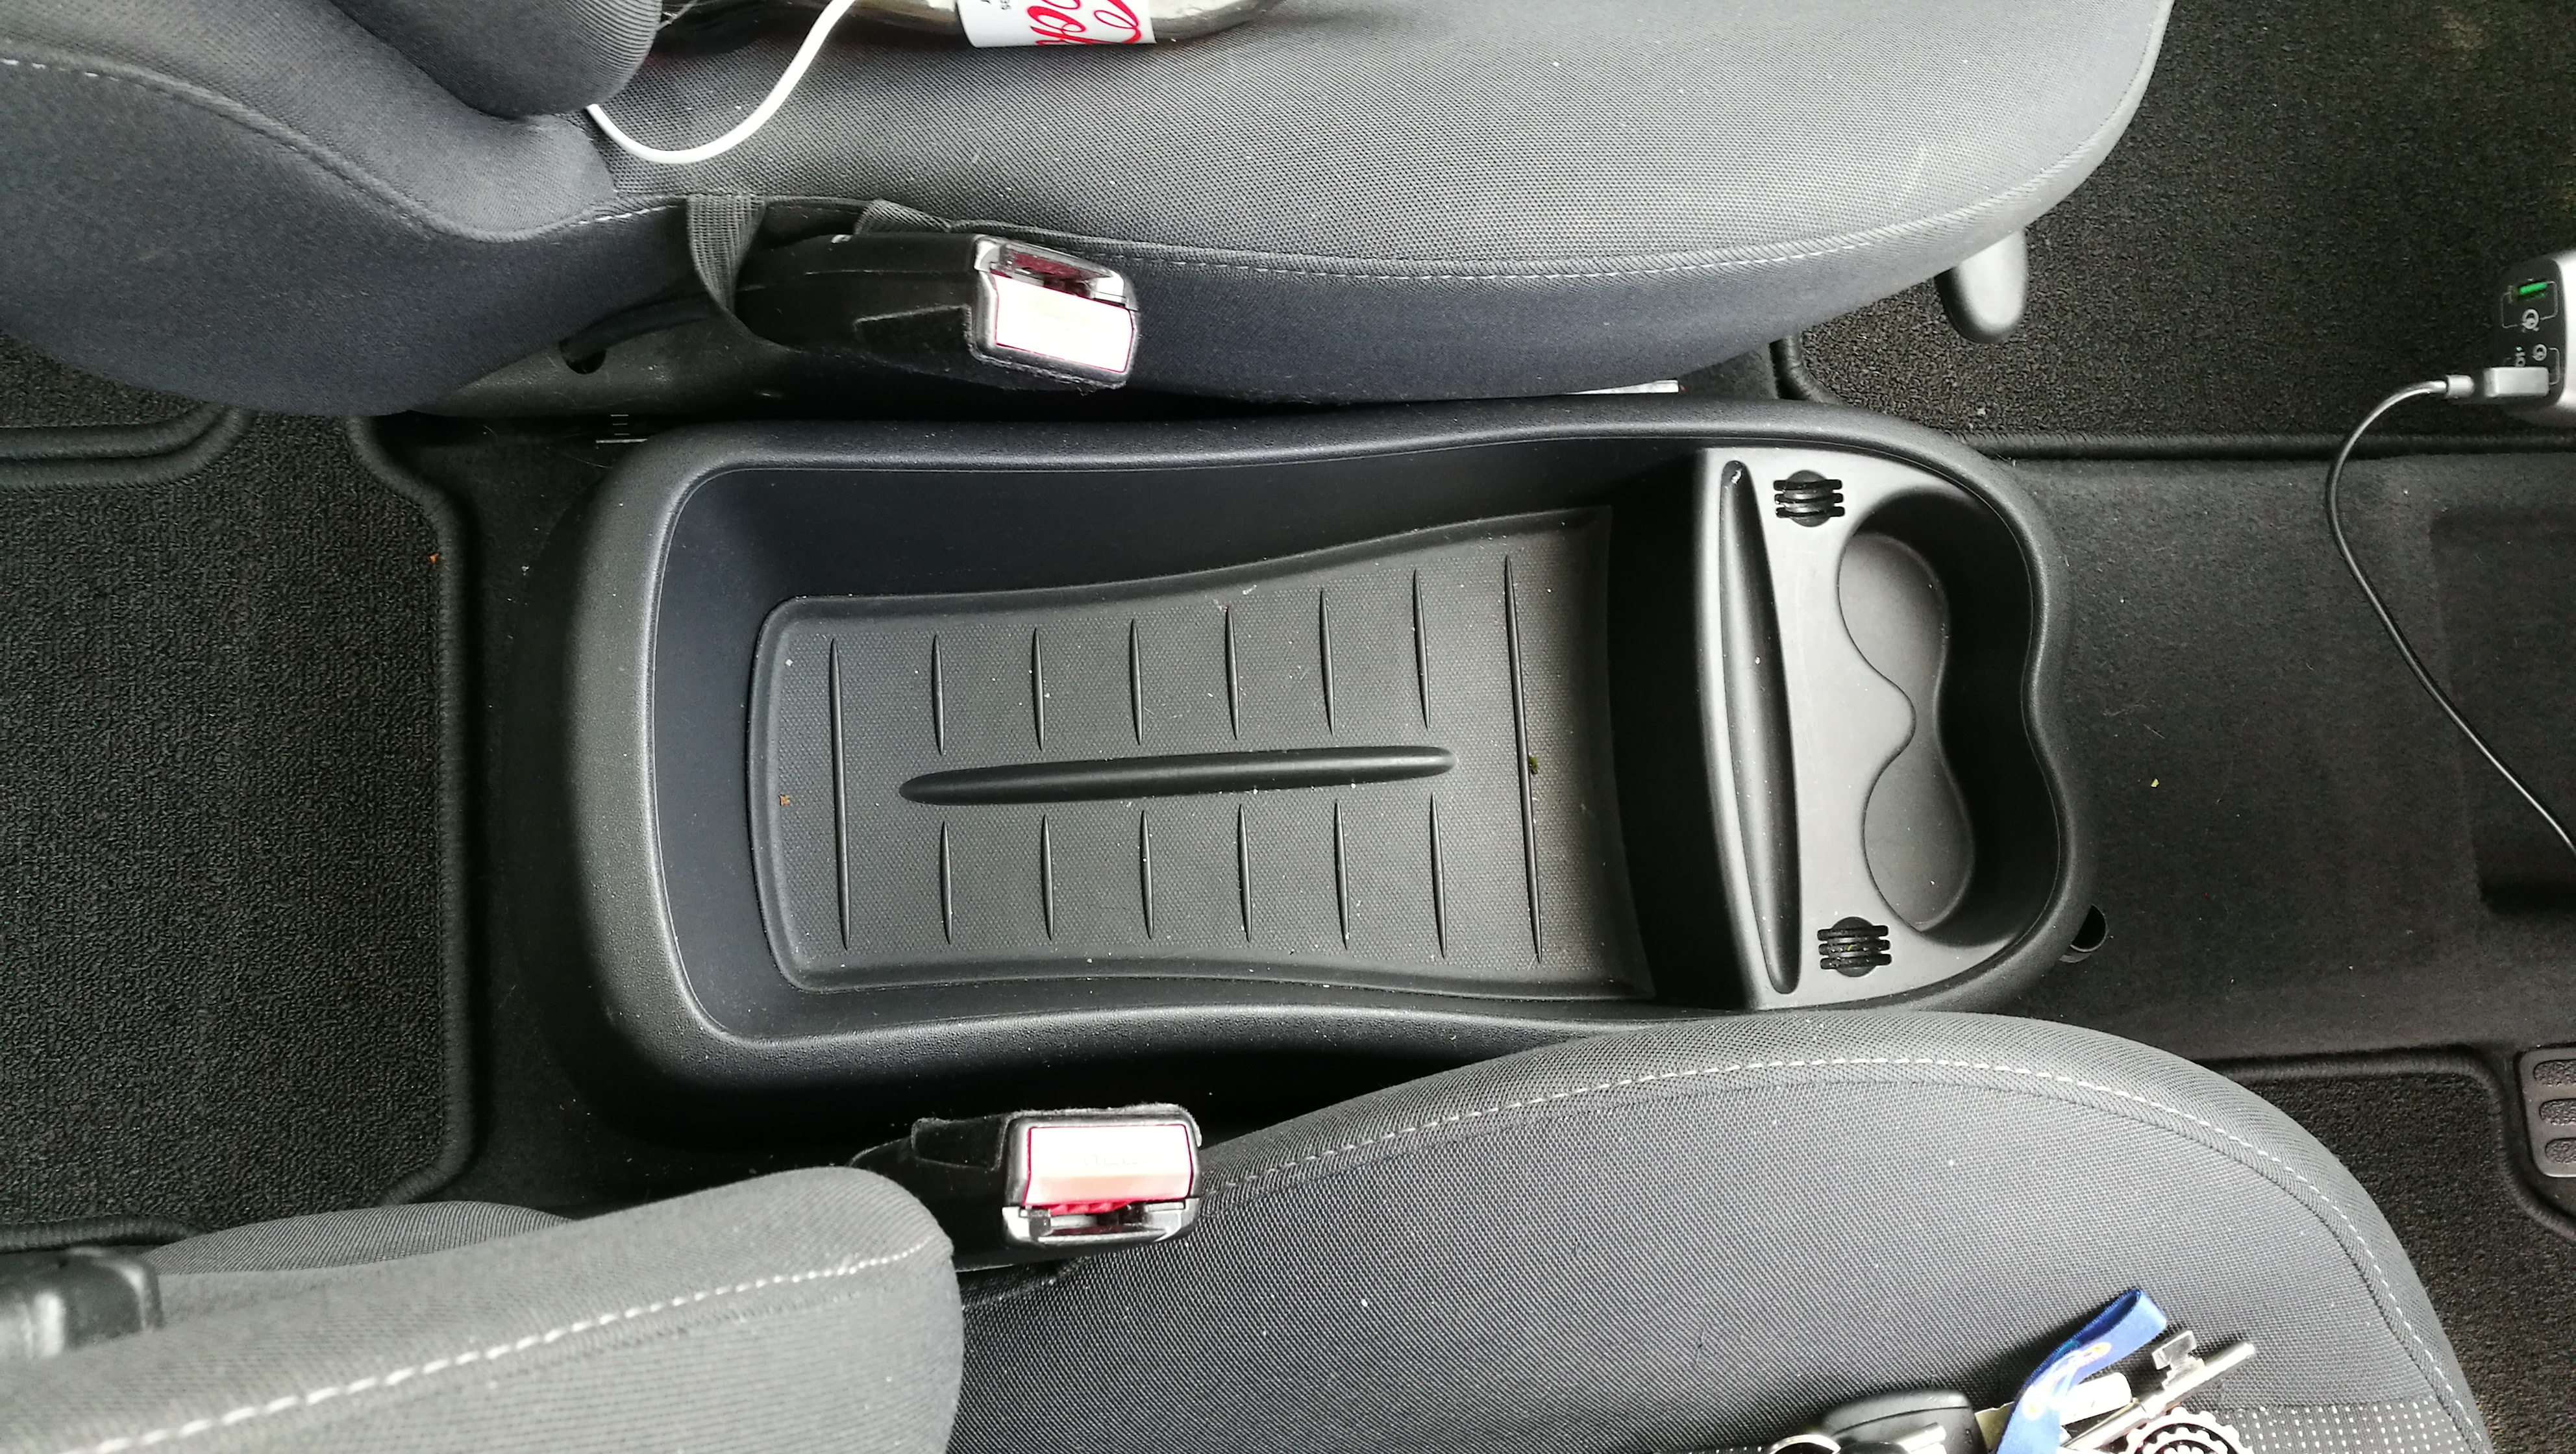 How To - Fit A Sliding Armrest Into A Renault Scenic